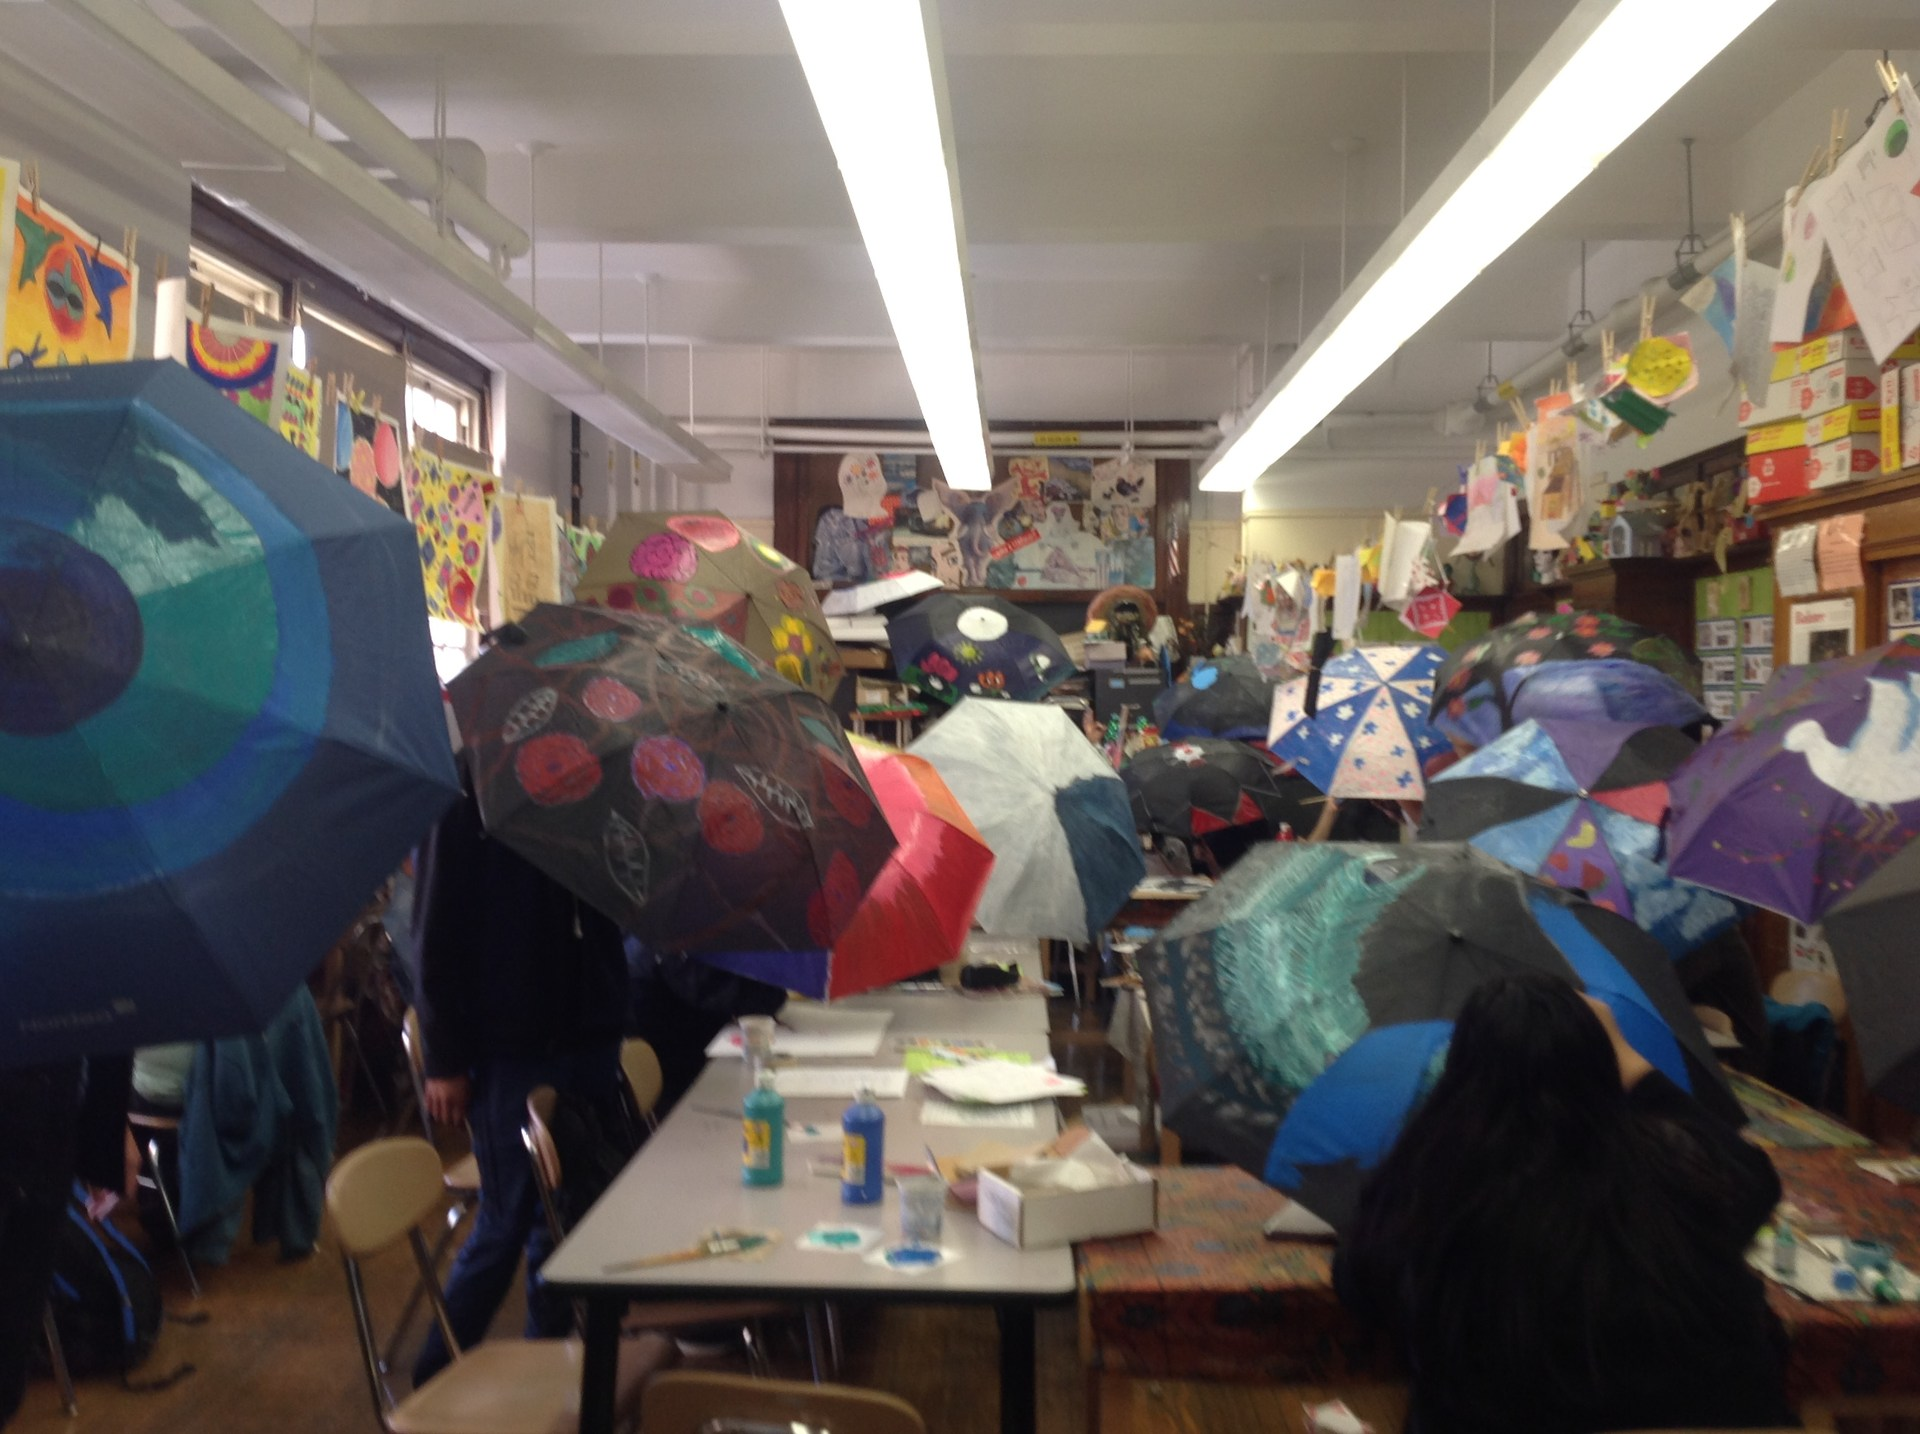 Students painting umbrellas for spring exhibit.